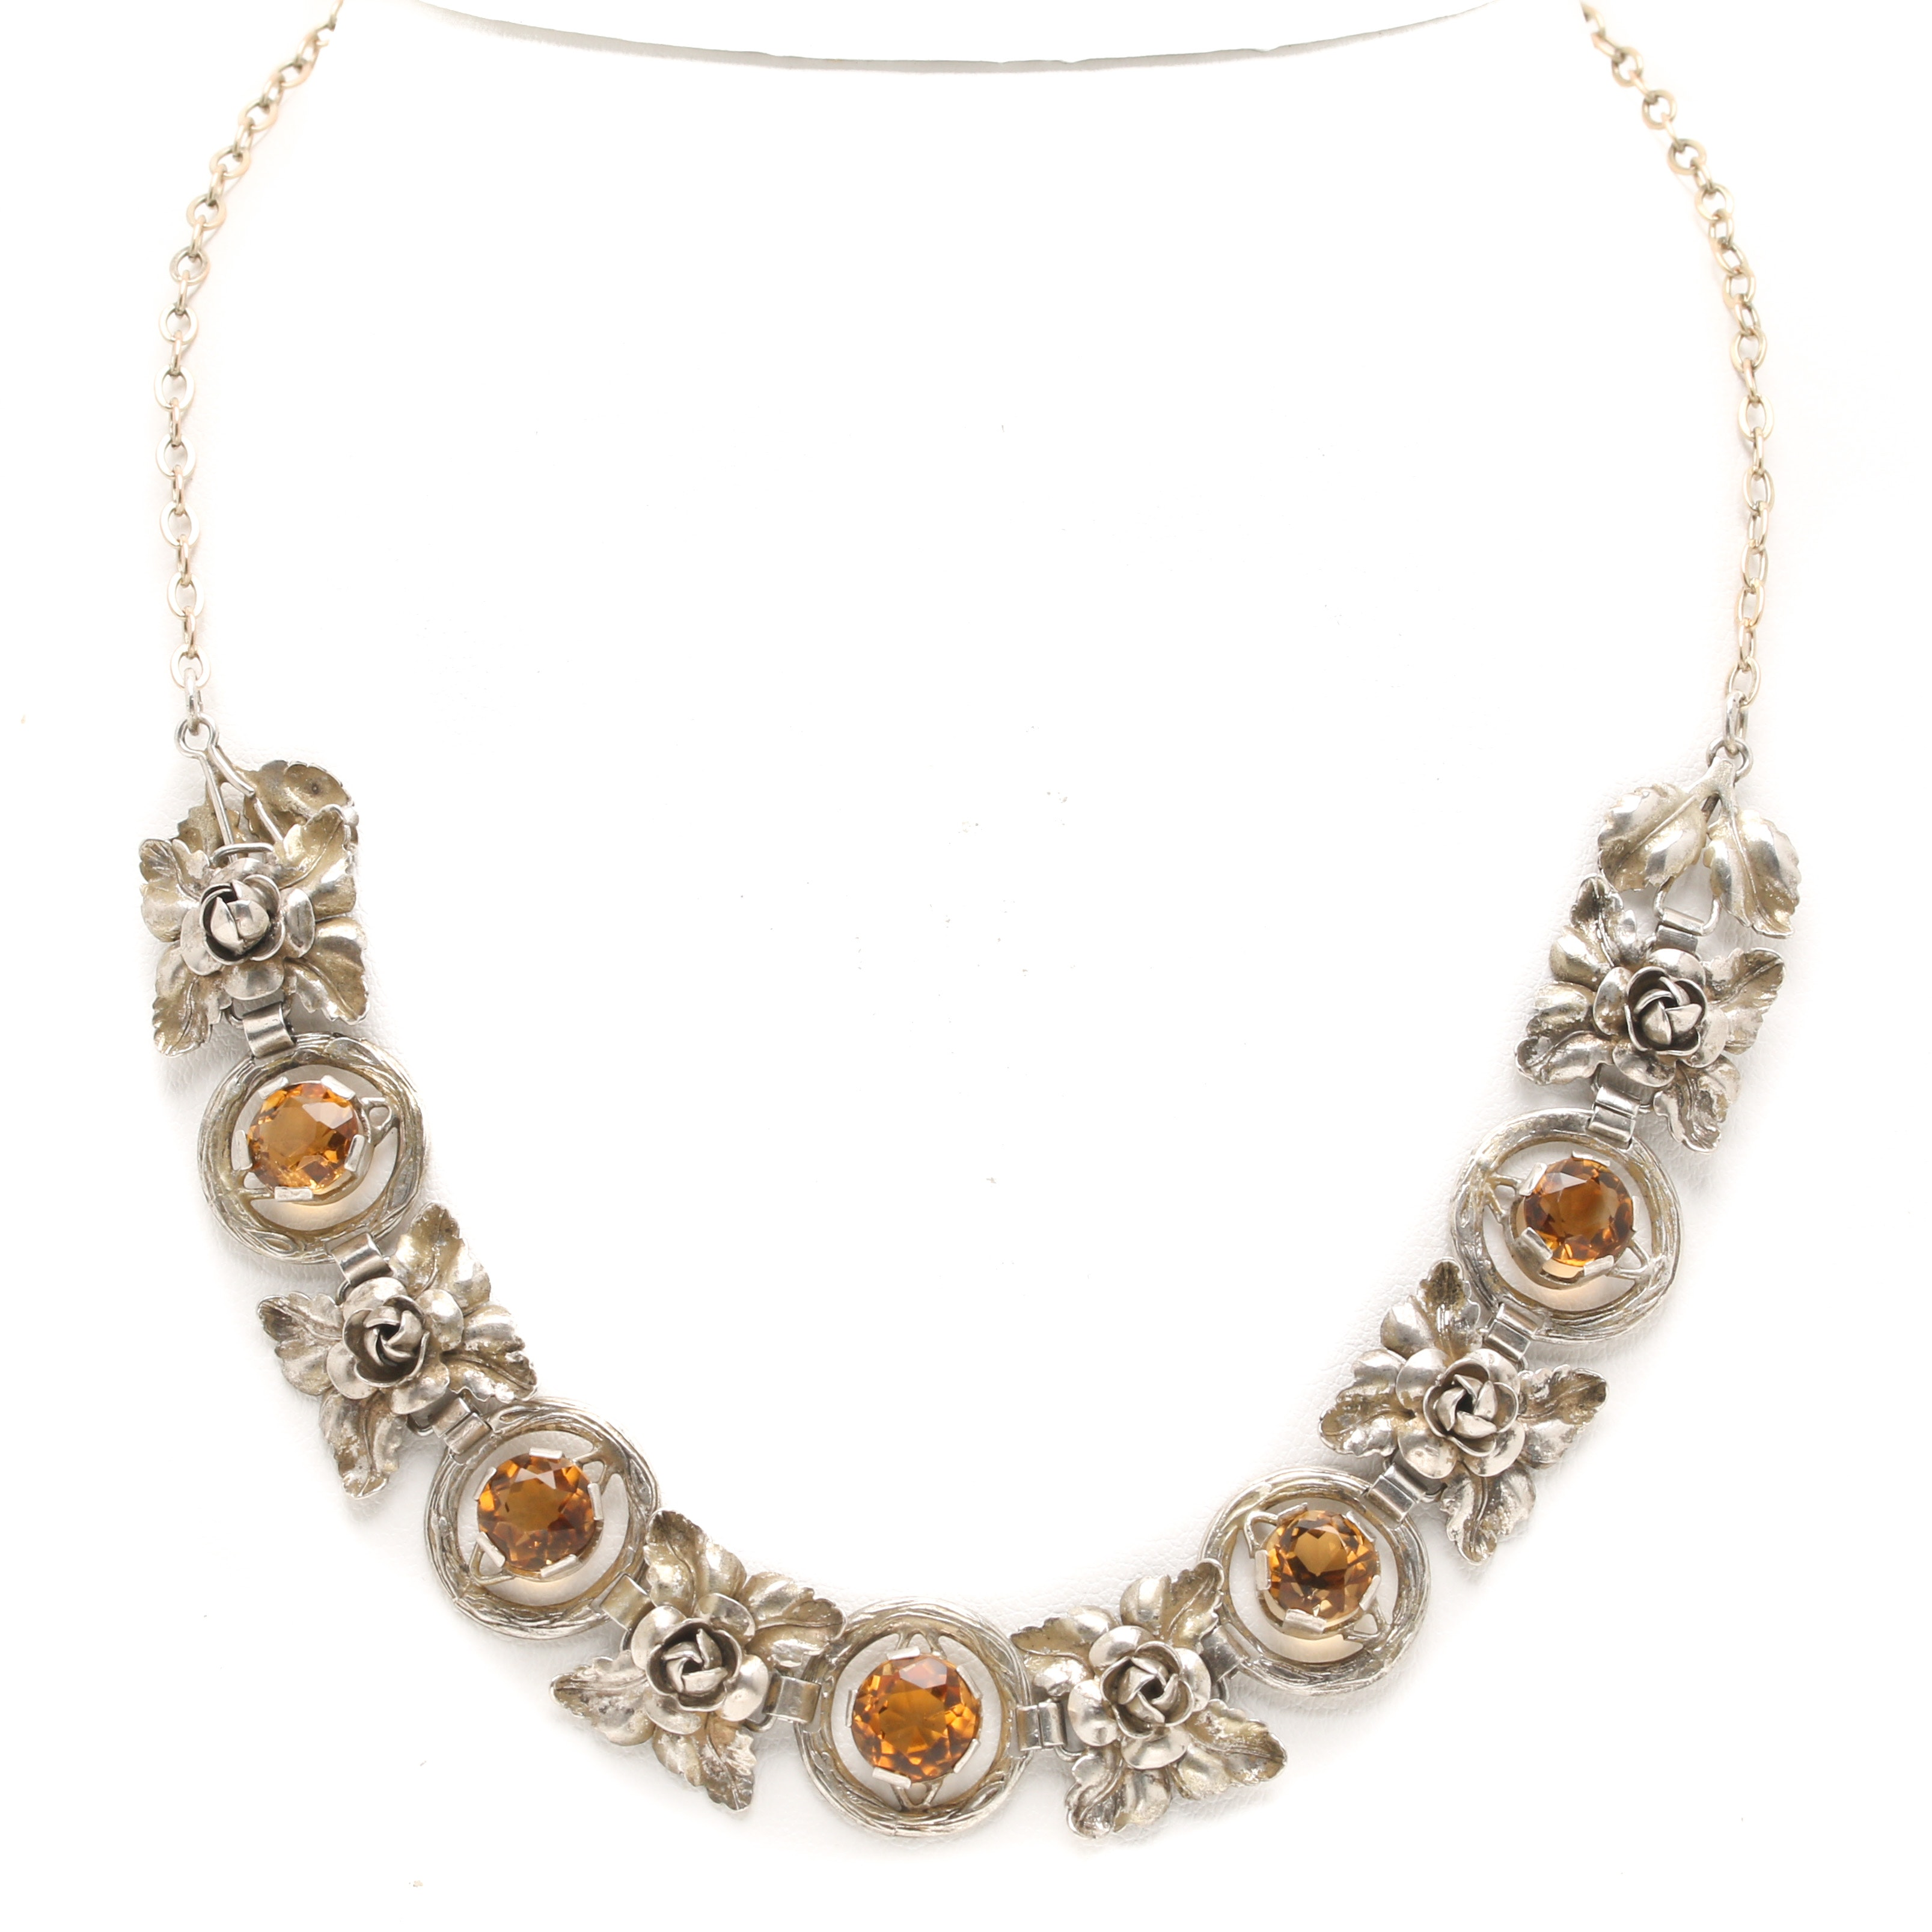 German Made Sterling Silver Citrine Necklace